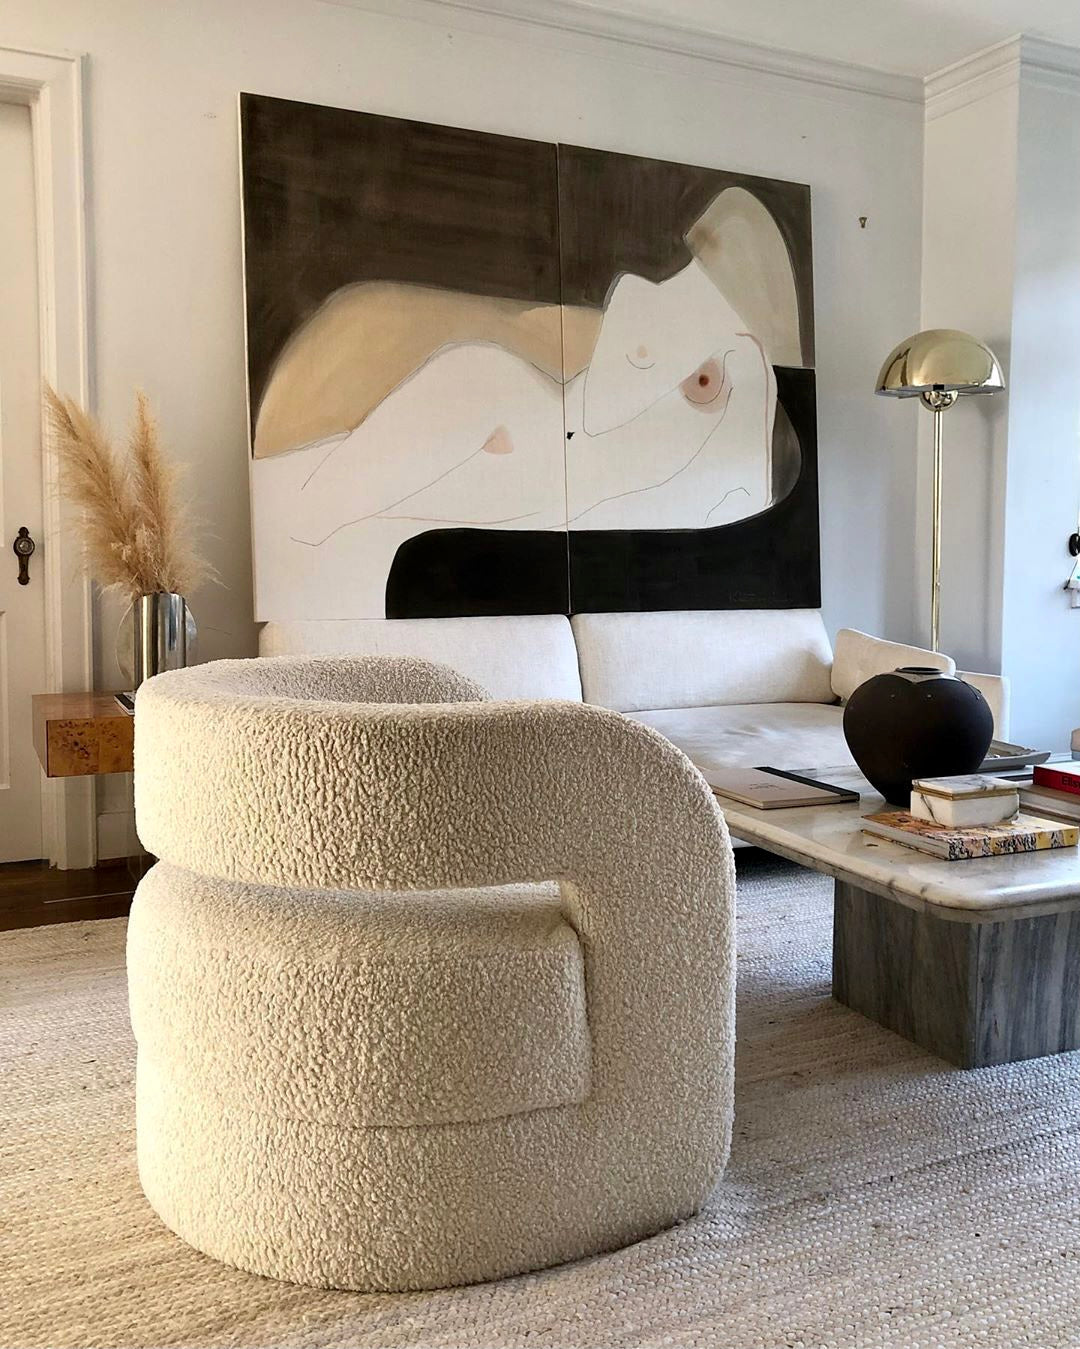 Cream boucle chair with Kristen Giorgi painting